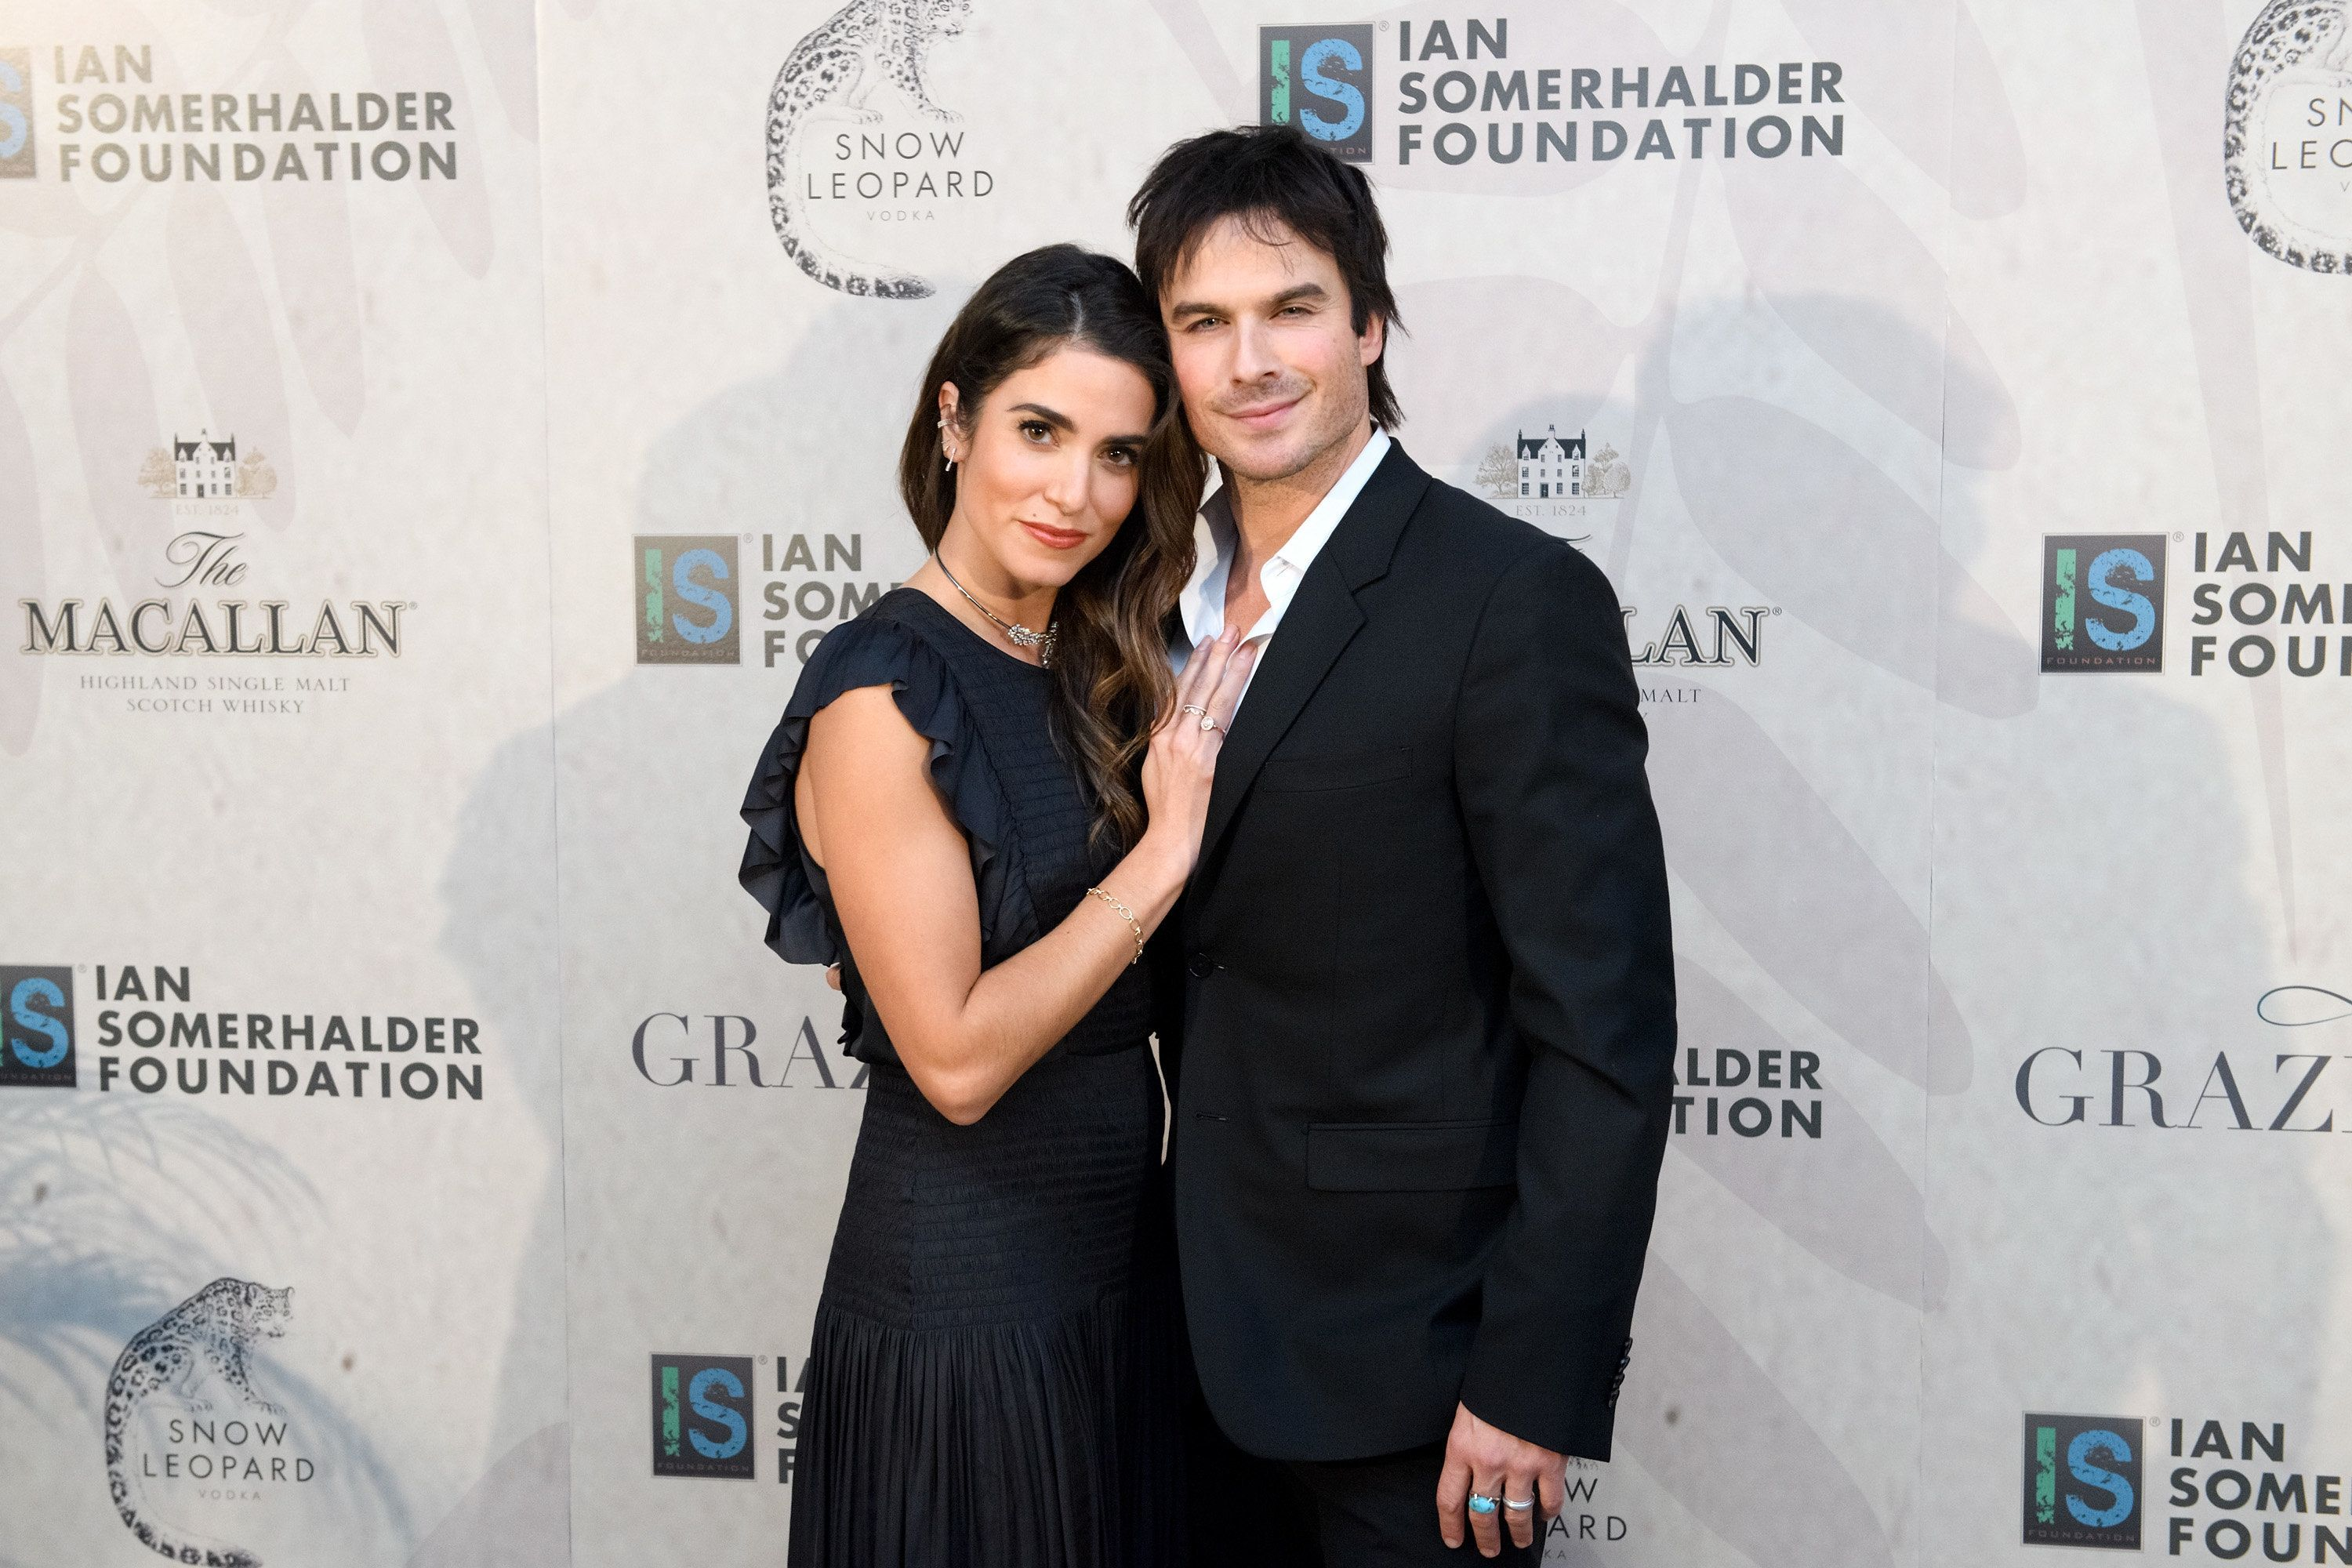 CHICAGO, IL - DECEMBER 03:  Nikki Reed and Ian Somerhalder attend Ian Somerhalder Foundation Benefit Gala at Galleria Marchetti on December 3, 2016 in Chicago, Illinois.  (Photo by Daniel Boczarski/WireImage)